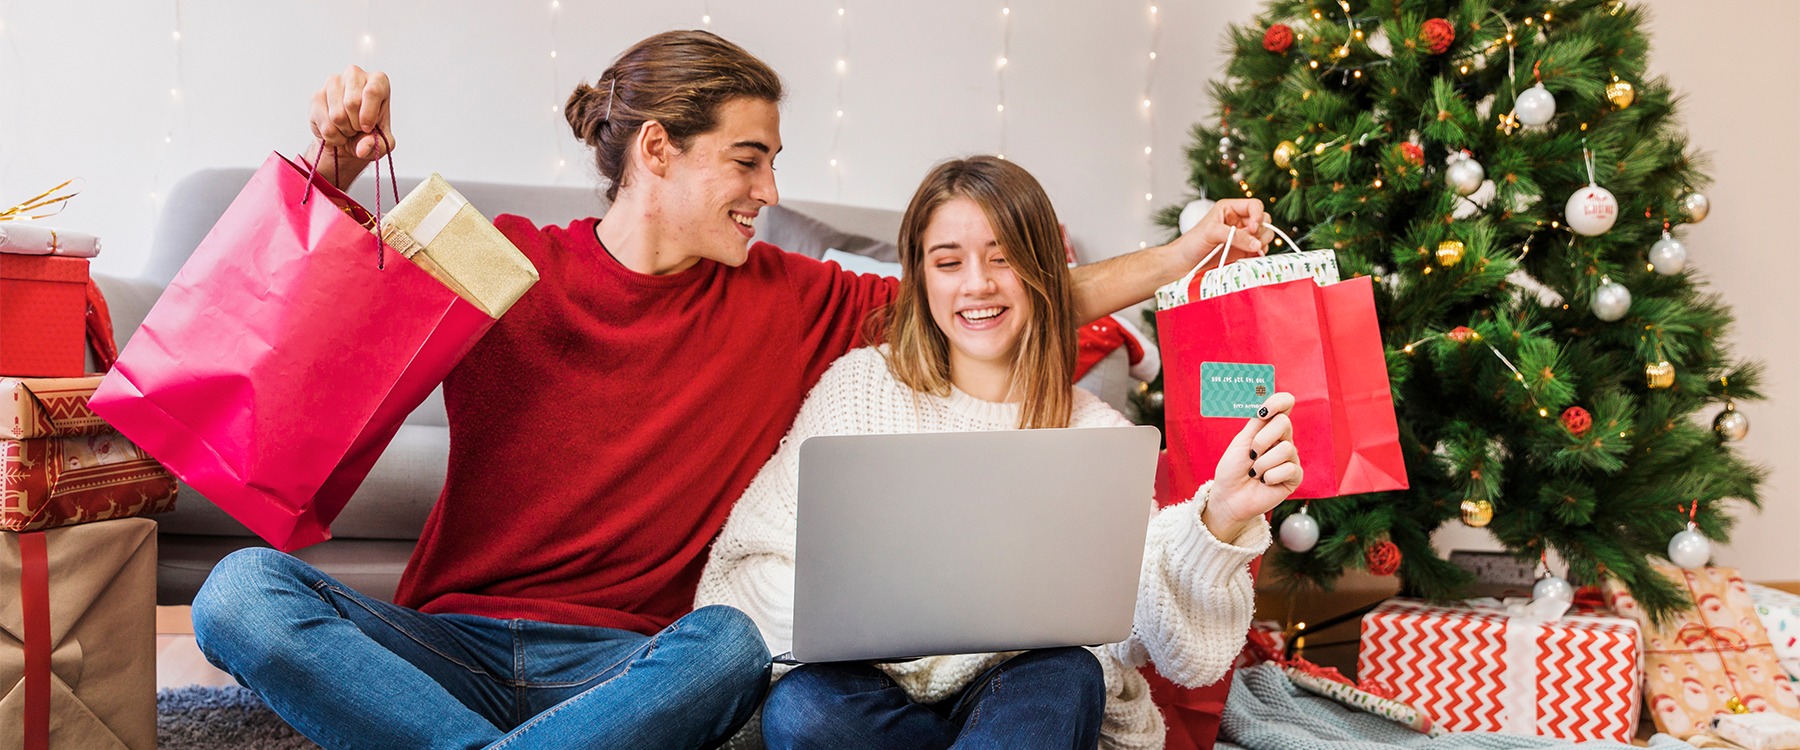 5 Top Tips to Get Your Business Christmas Ready Online Image